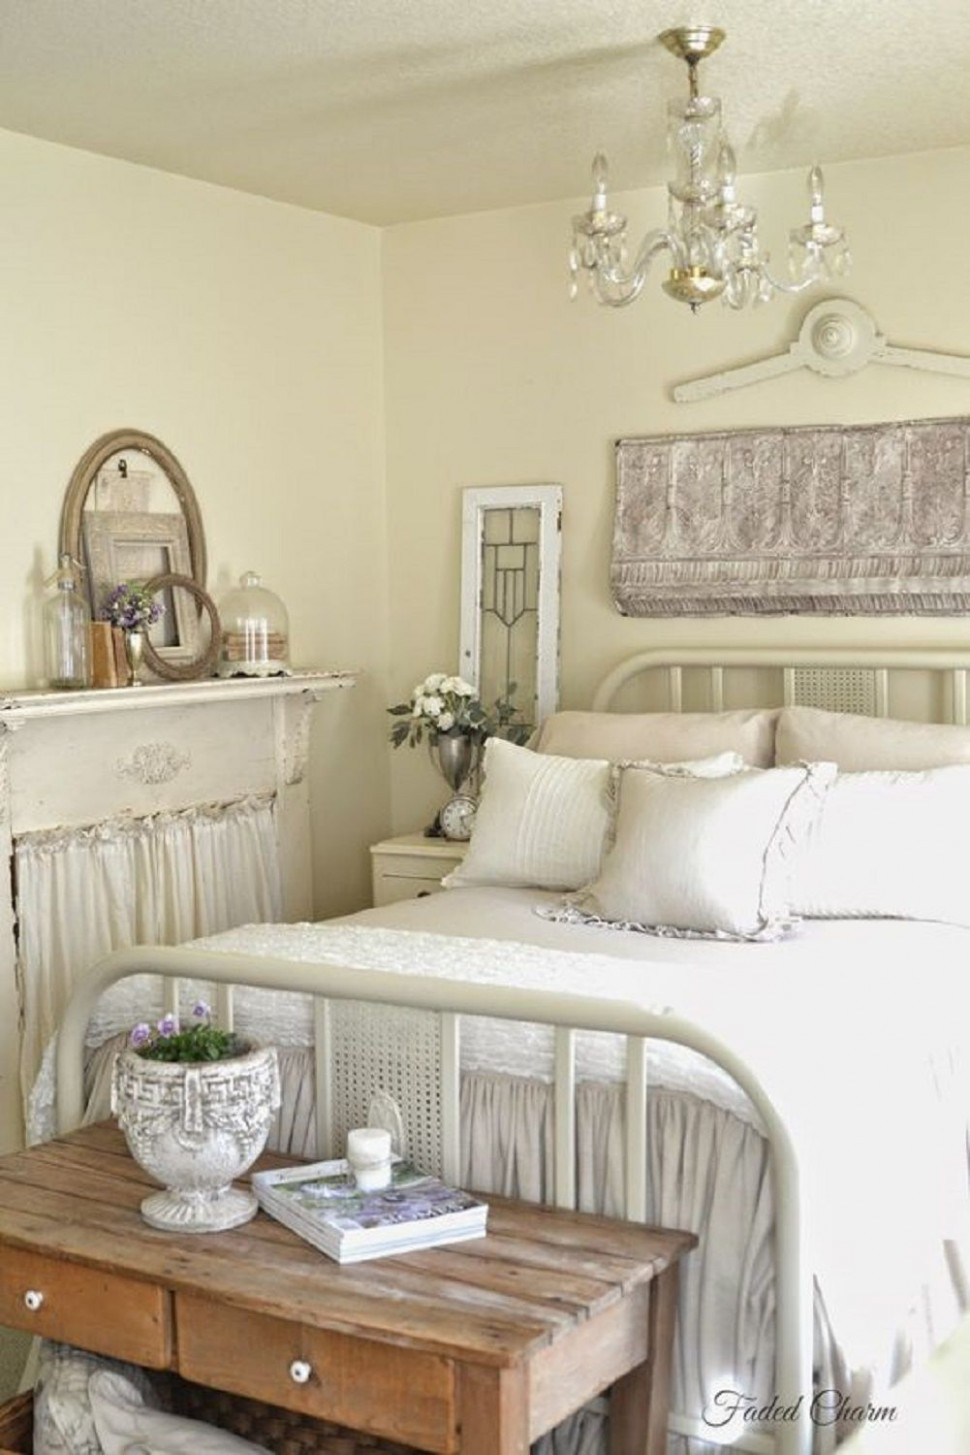 Ideas for French Country-Style Bedroom Decor - Bedroom Ideas English Country